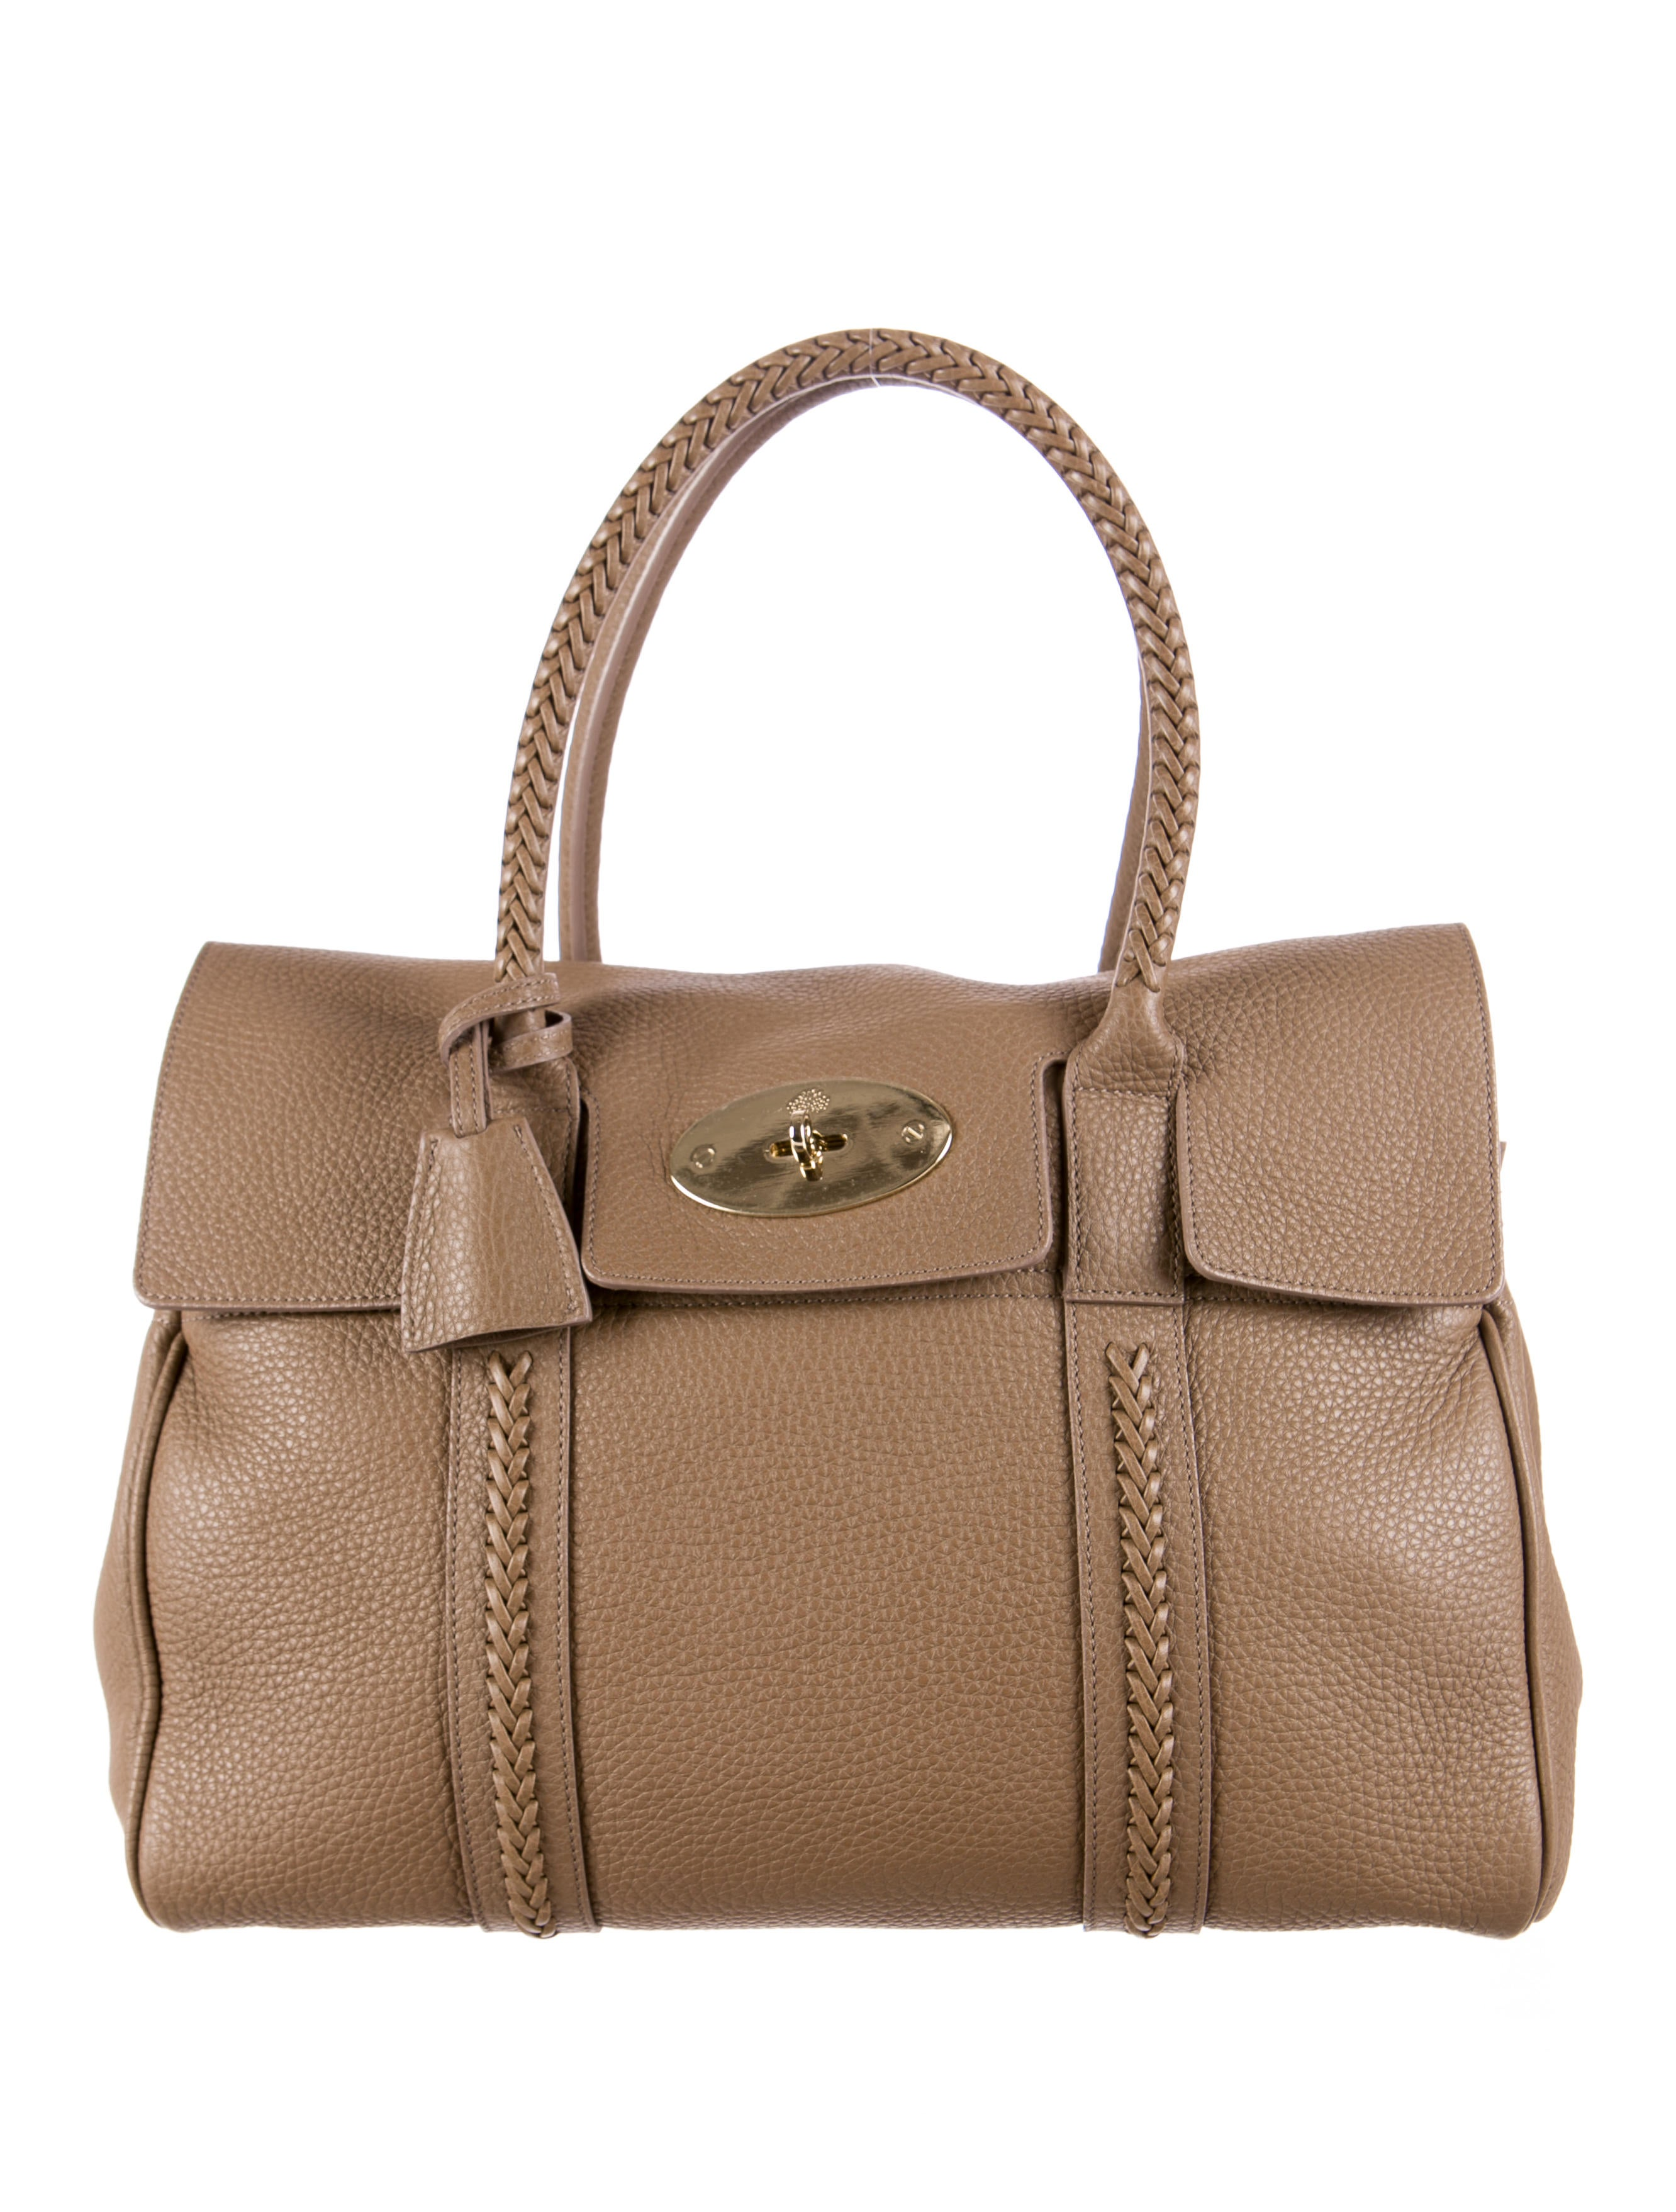 Mulberry bayswater bag handbags mul21028 the realreal for The bayswater